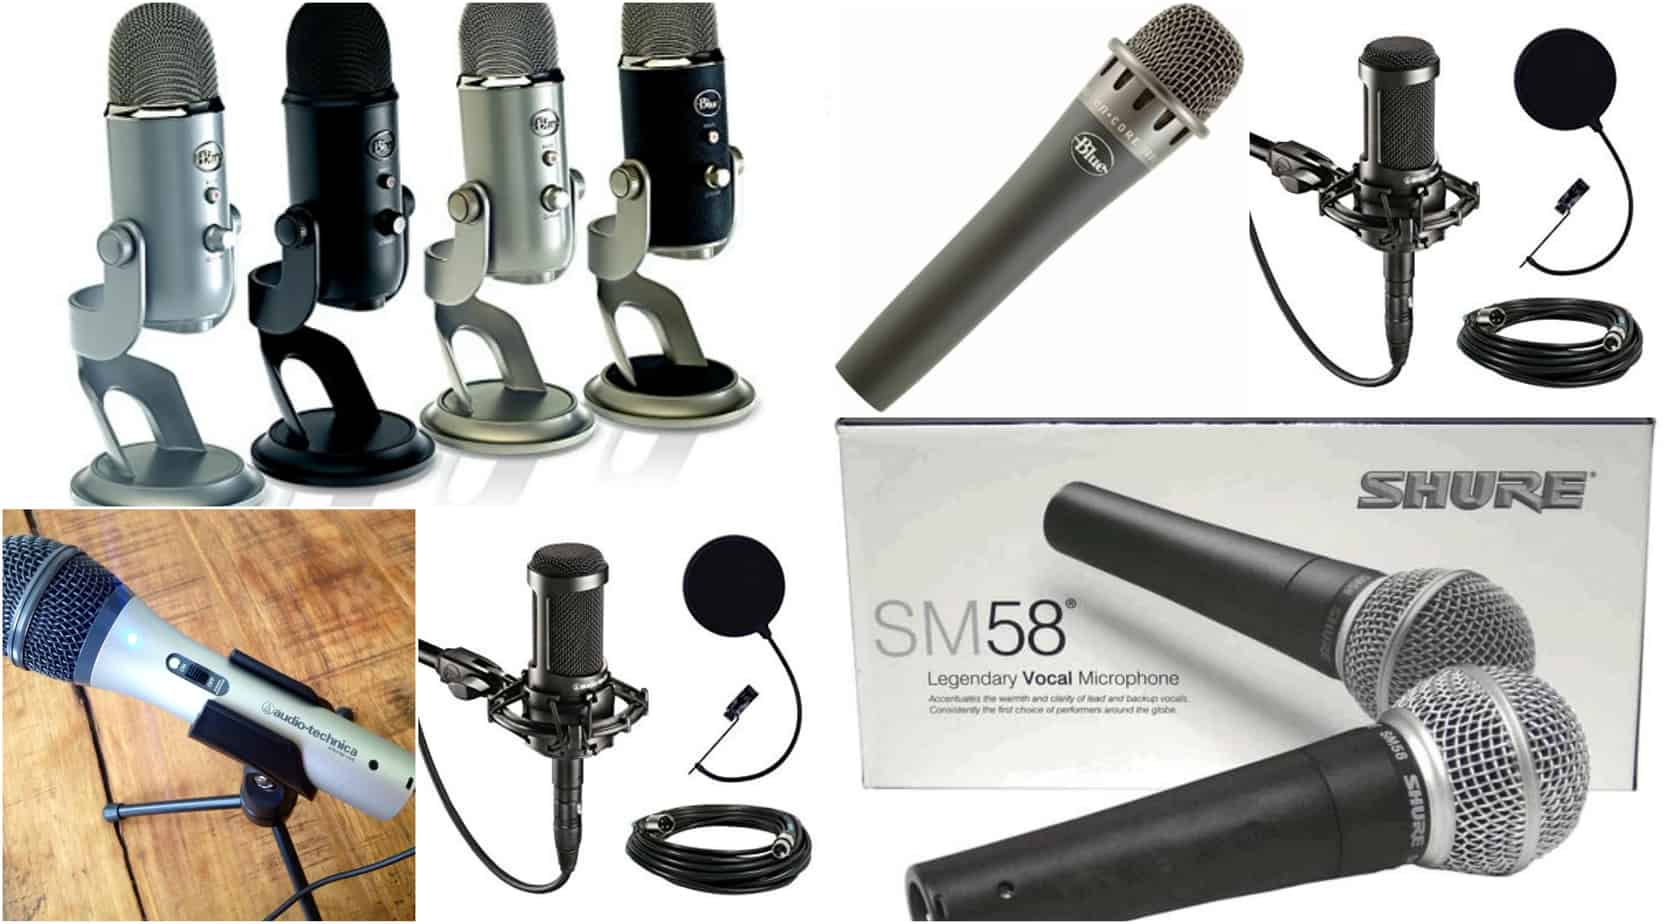 25 Of The Best Podcast Microphones Discover Podcasts Dynamic Compressor Self Powered Circuit Design Typically Provide A More Vibrant Sound With Casual Feel And Condenser Are Usually Clear But Can Pick Up Ambient